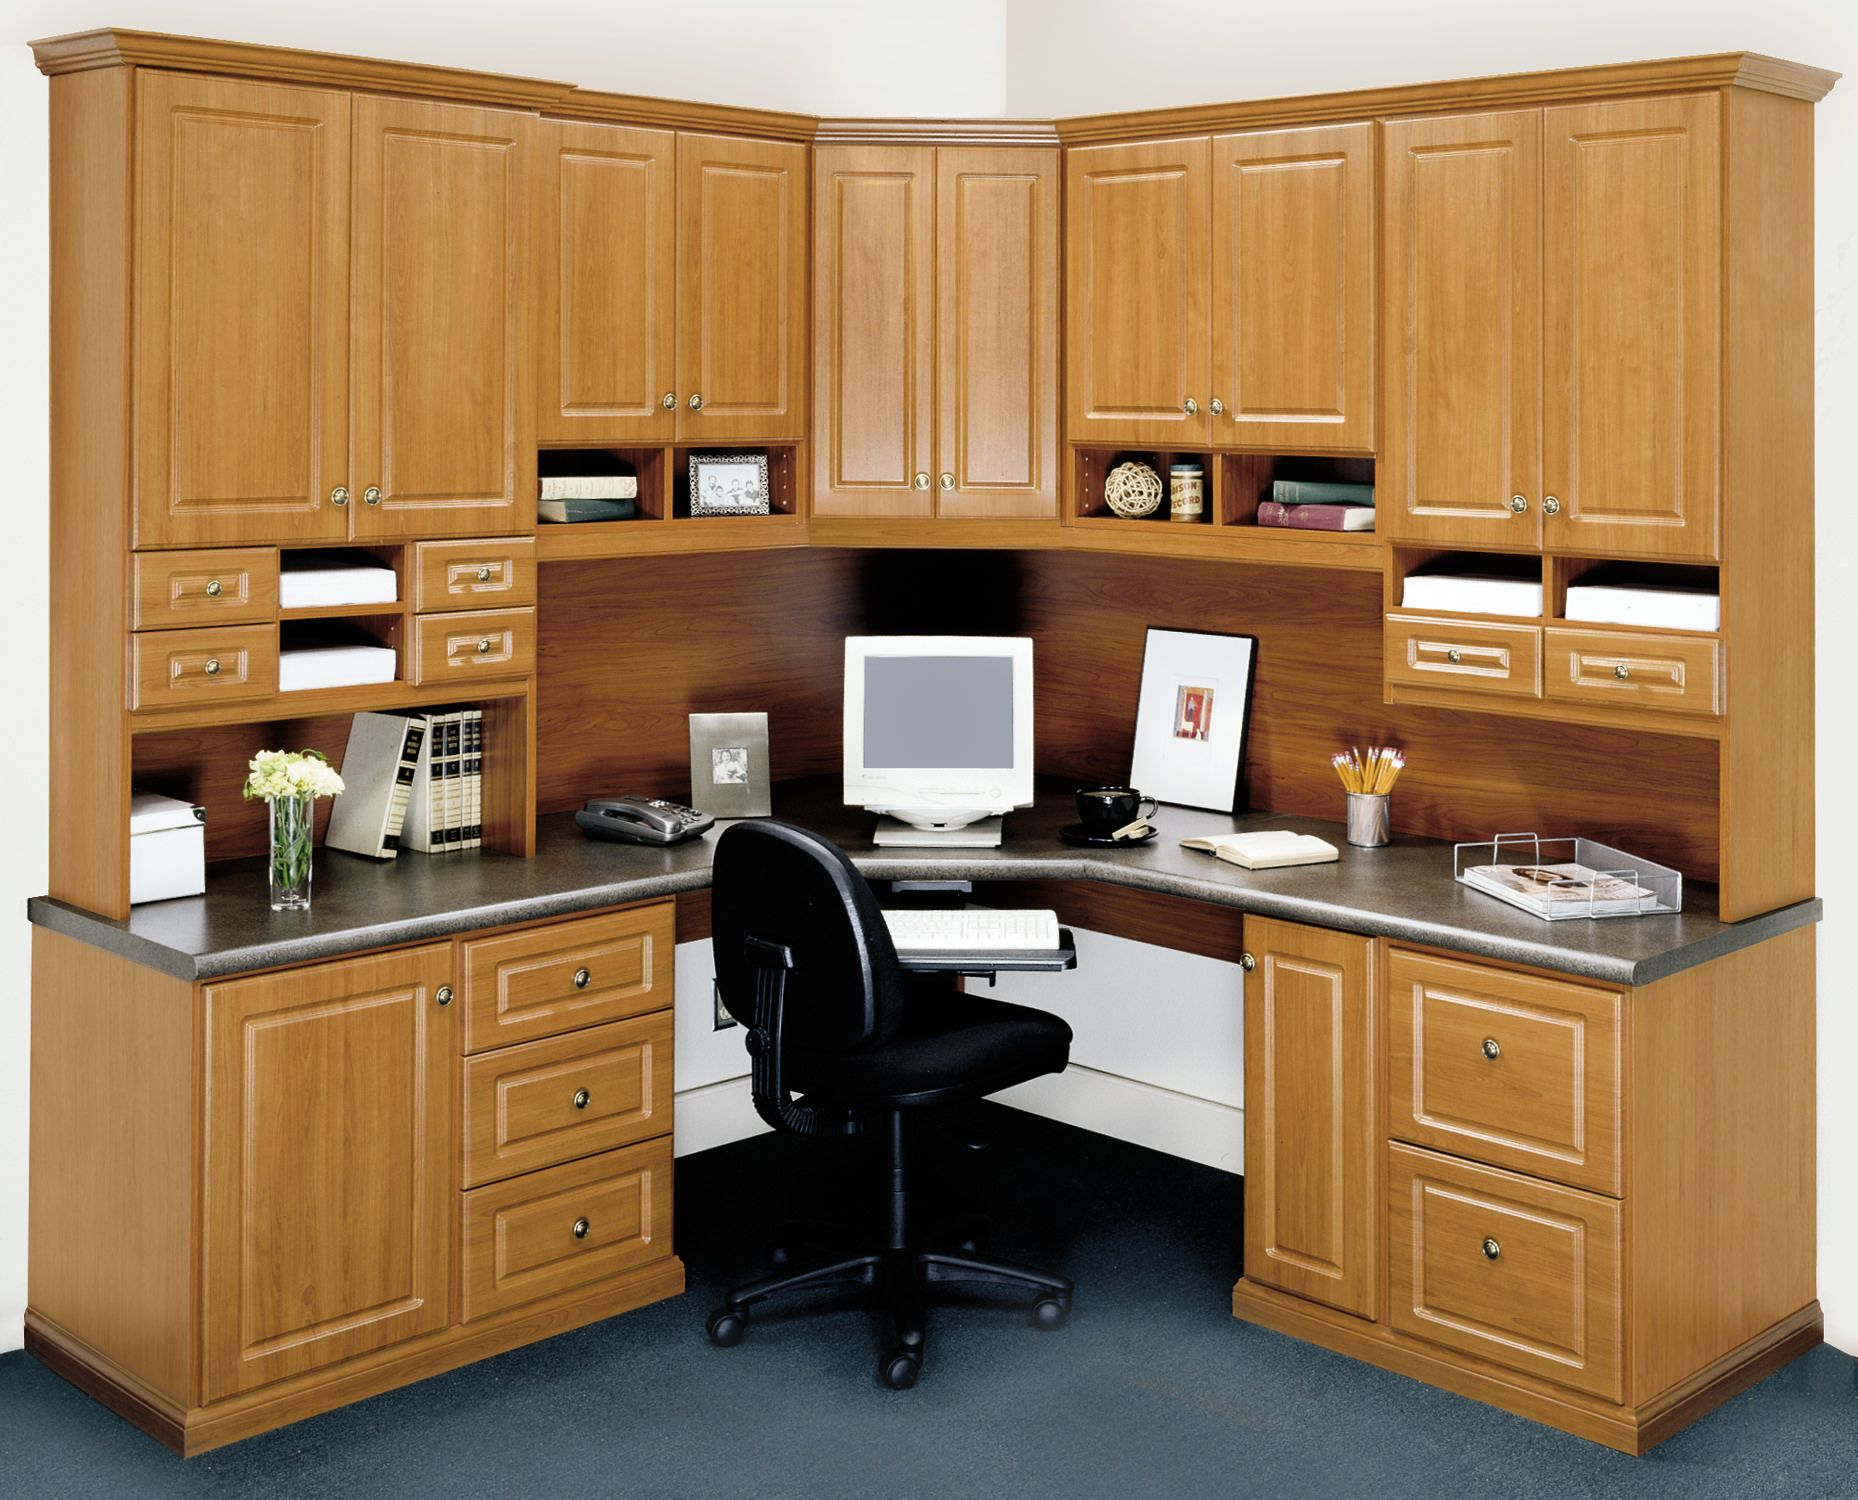 Home Office Cabinets Home Office Organization Systems Infinity Homes Home Office Cabinets Home Office Organization